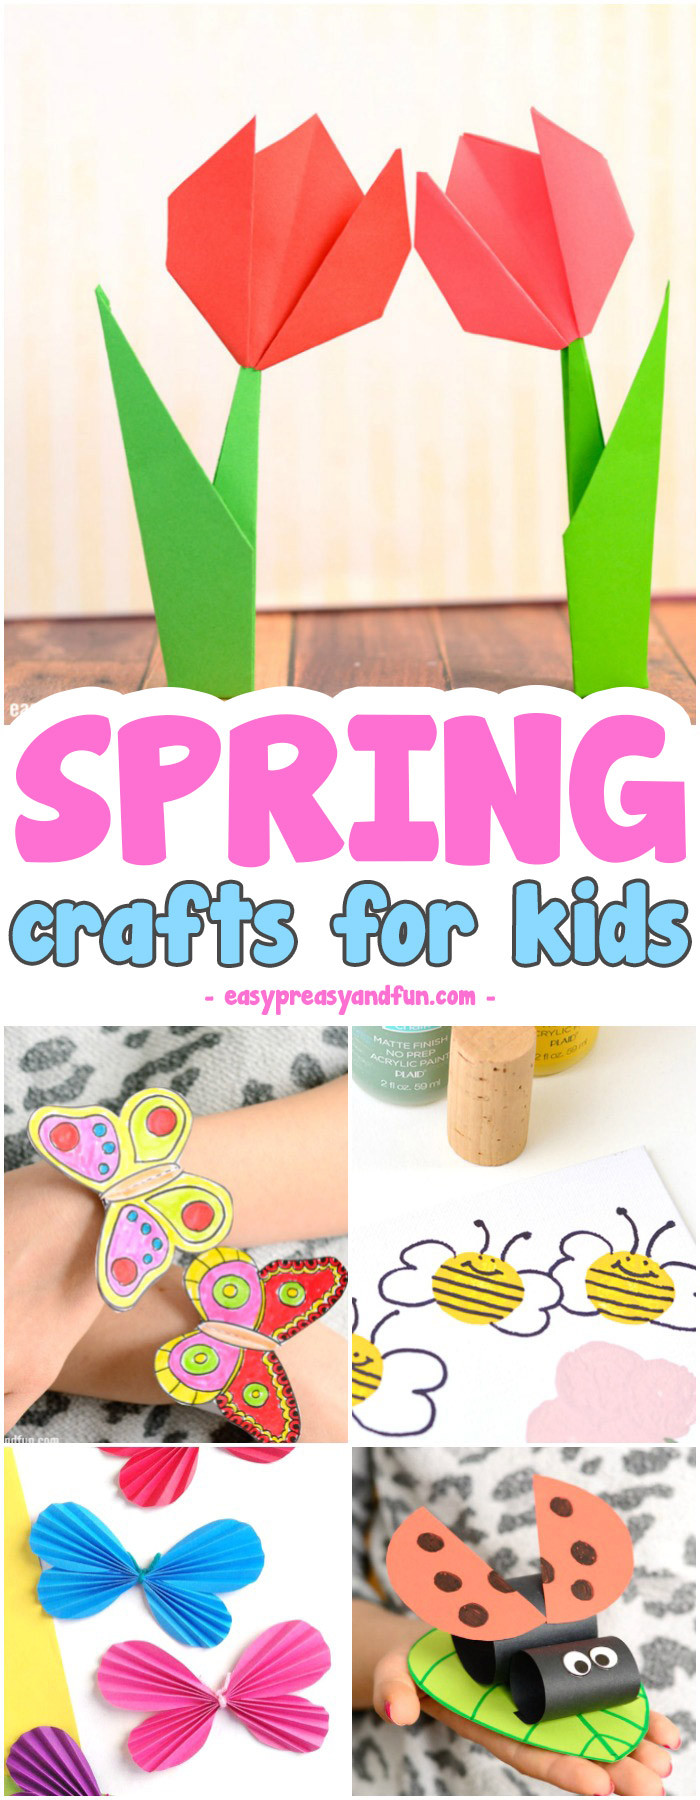 Best ideas about Arts And Crafts Ideas For Kids . Save or Pin Spring Crafts for Kids Art and Craft Project Ideas for Now.